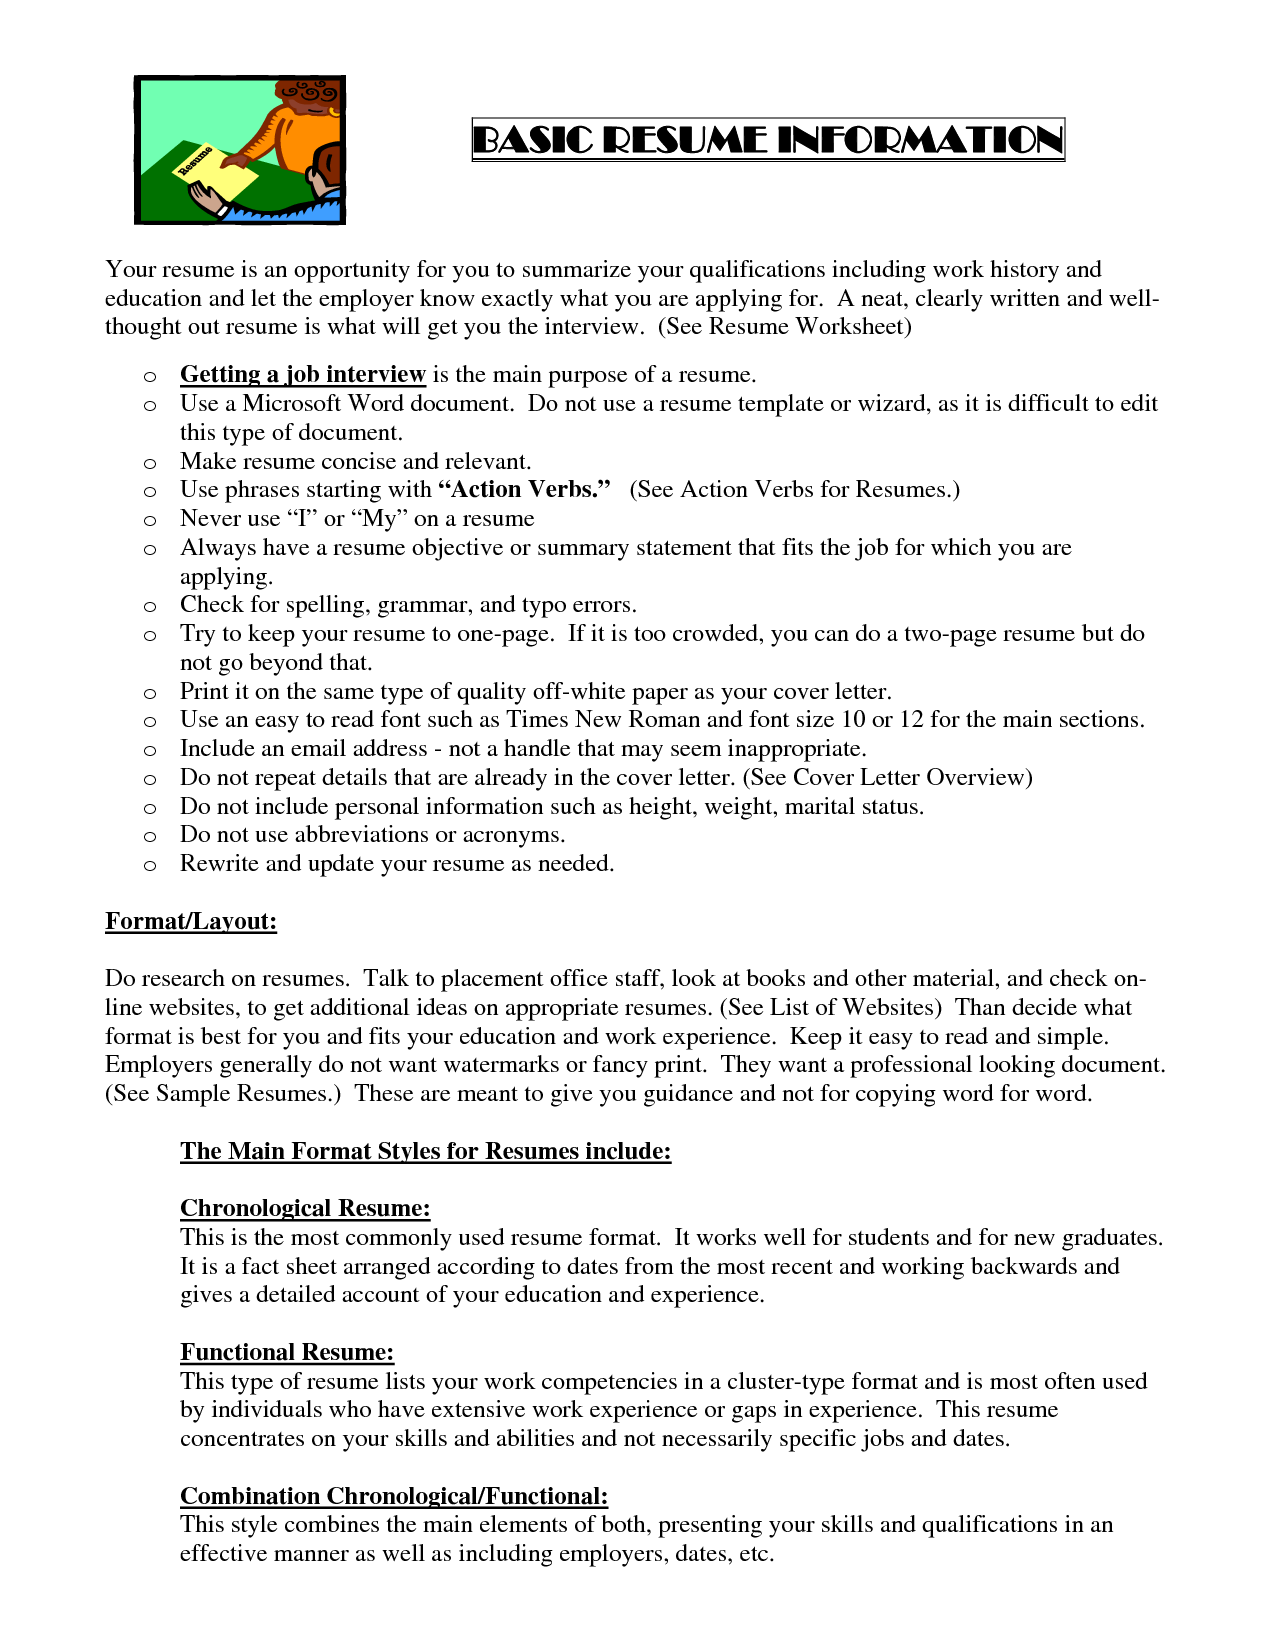 Sample Resume Pdf Basic Resume Template Pdf  Httpwwwresumecareerbasic